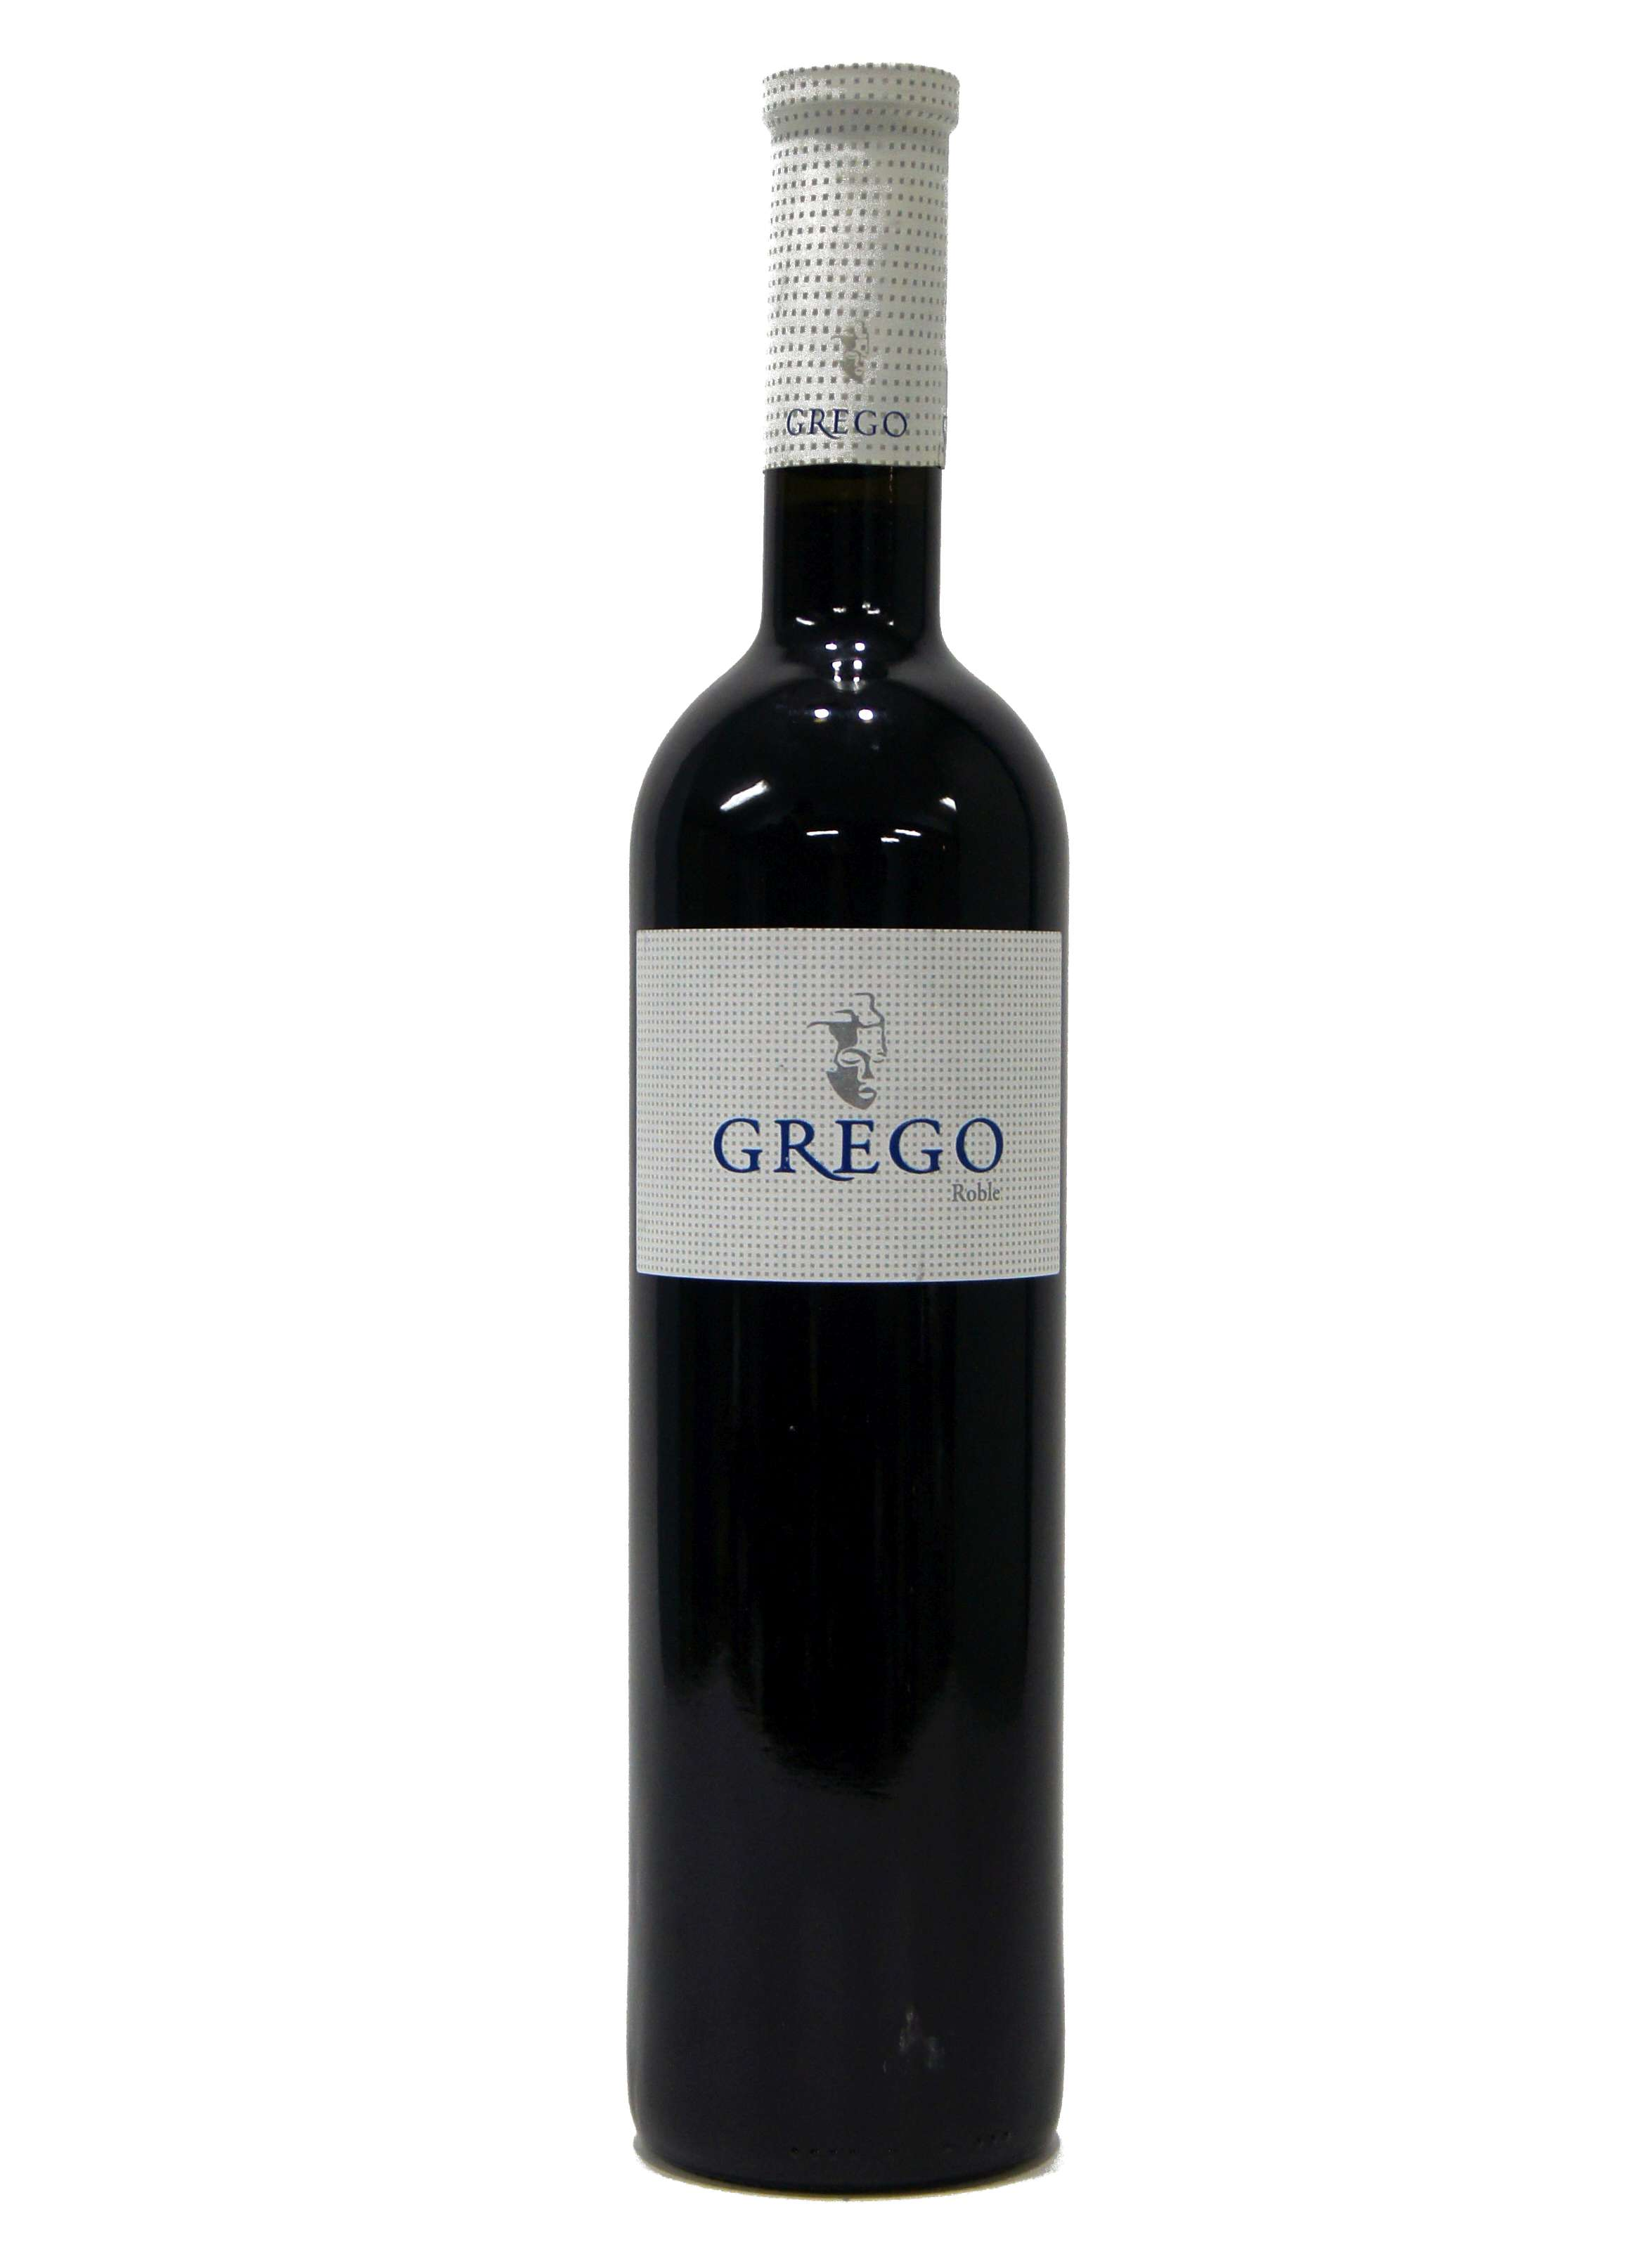 Grego Roble 2013